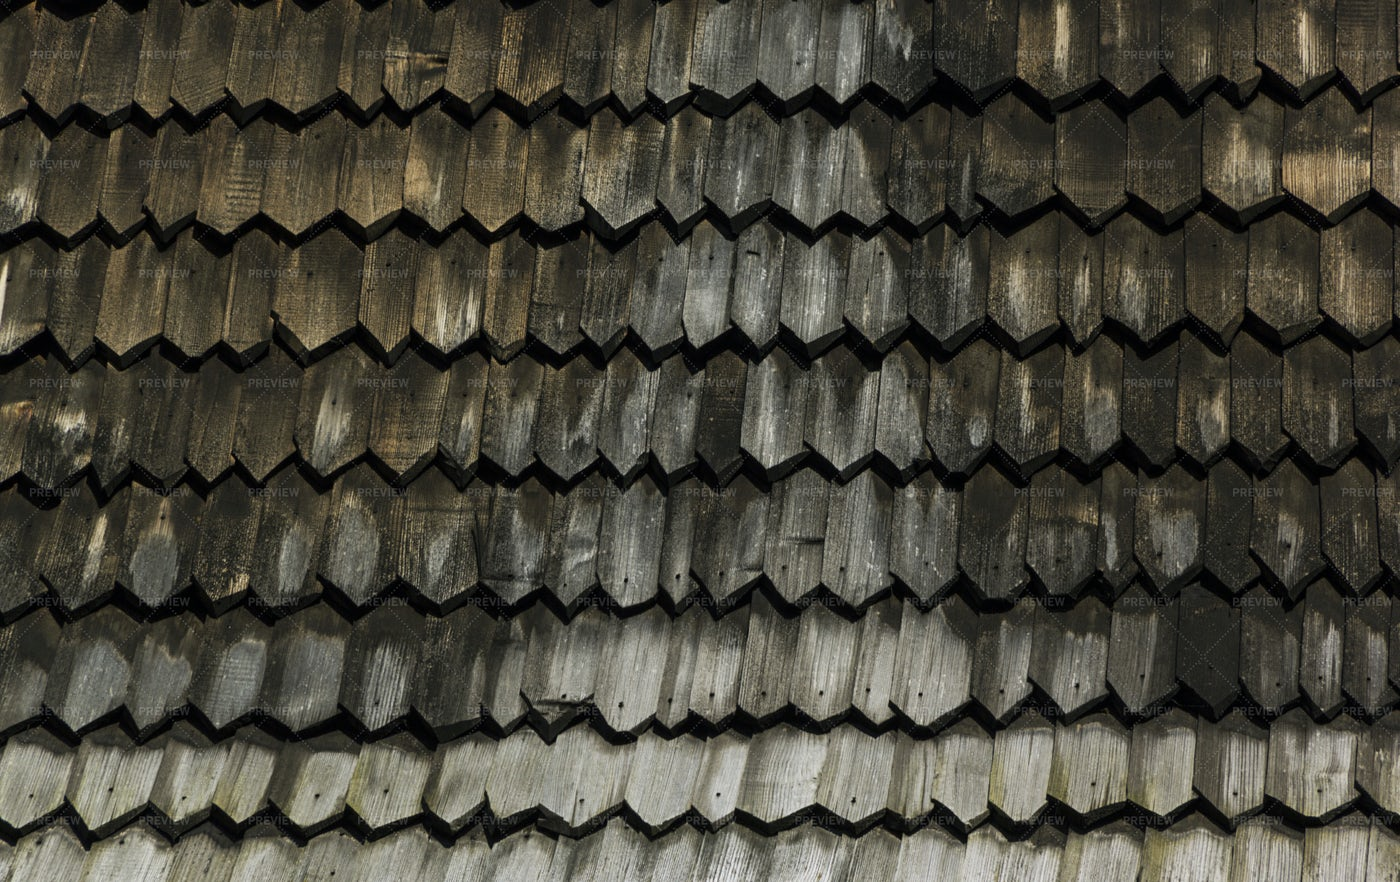 Fragment Of Old Wooden Roof Tiles: Stock Photos